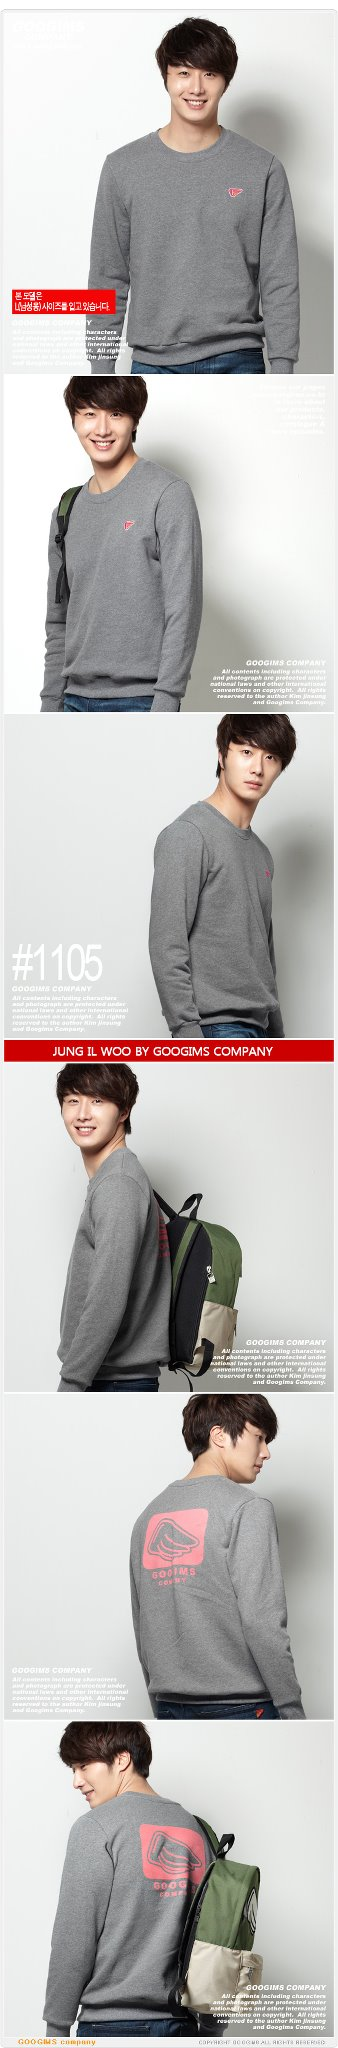 2011 10 Jung II-woo for Googims. Part 100024